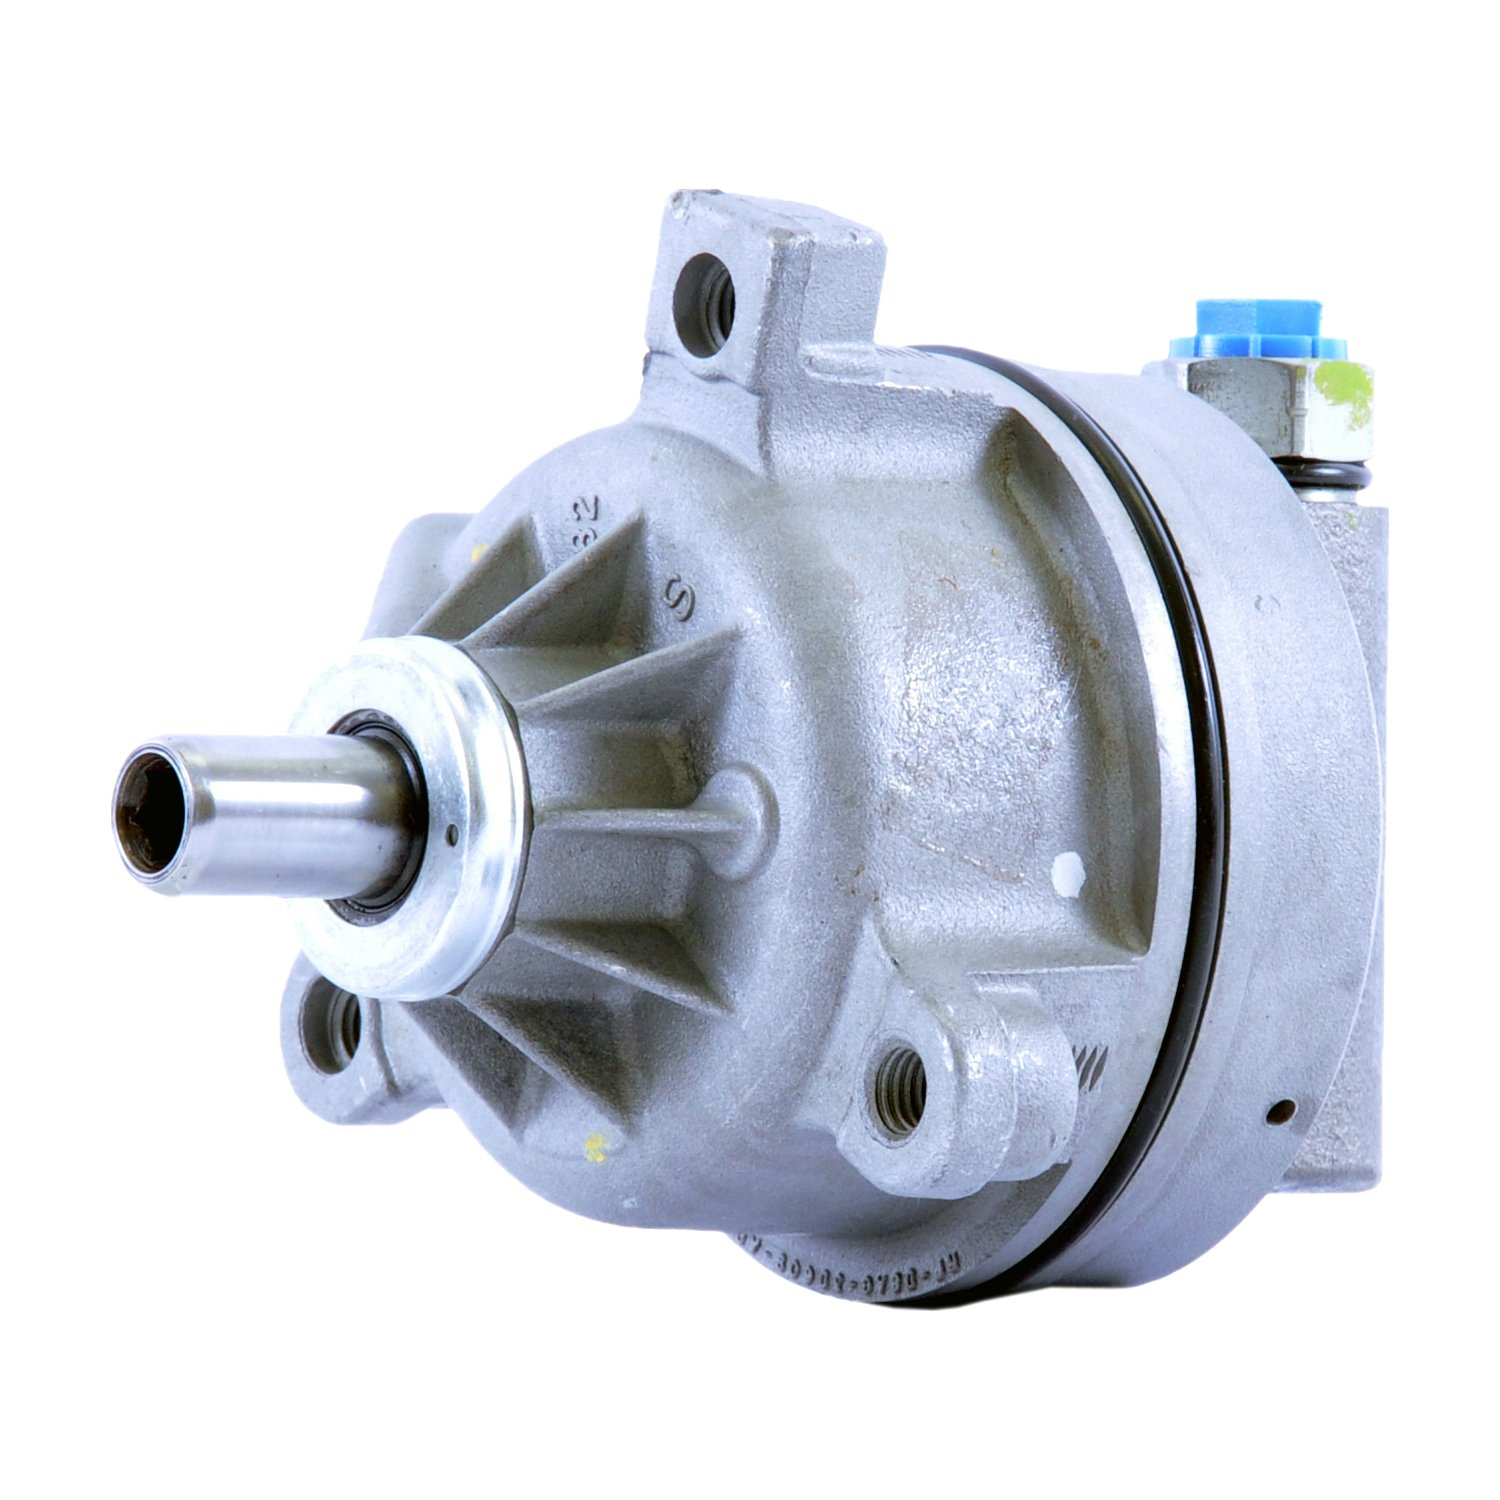 Remanufactured ACDelco 36P0015 Professional Power Steering Pump